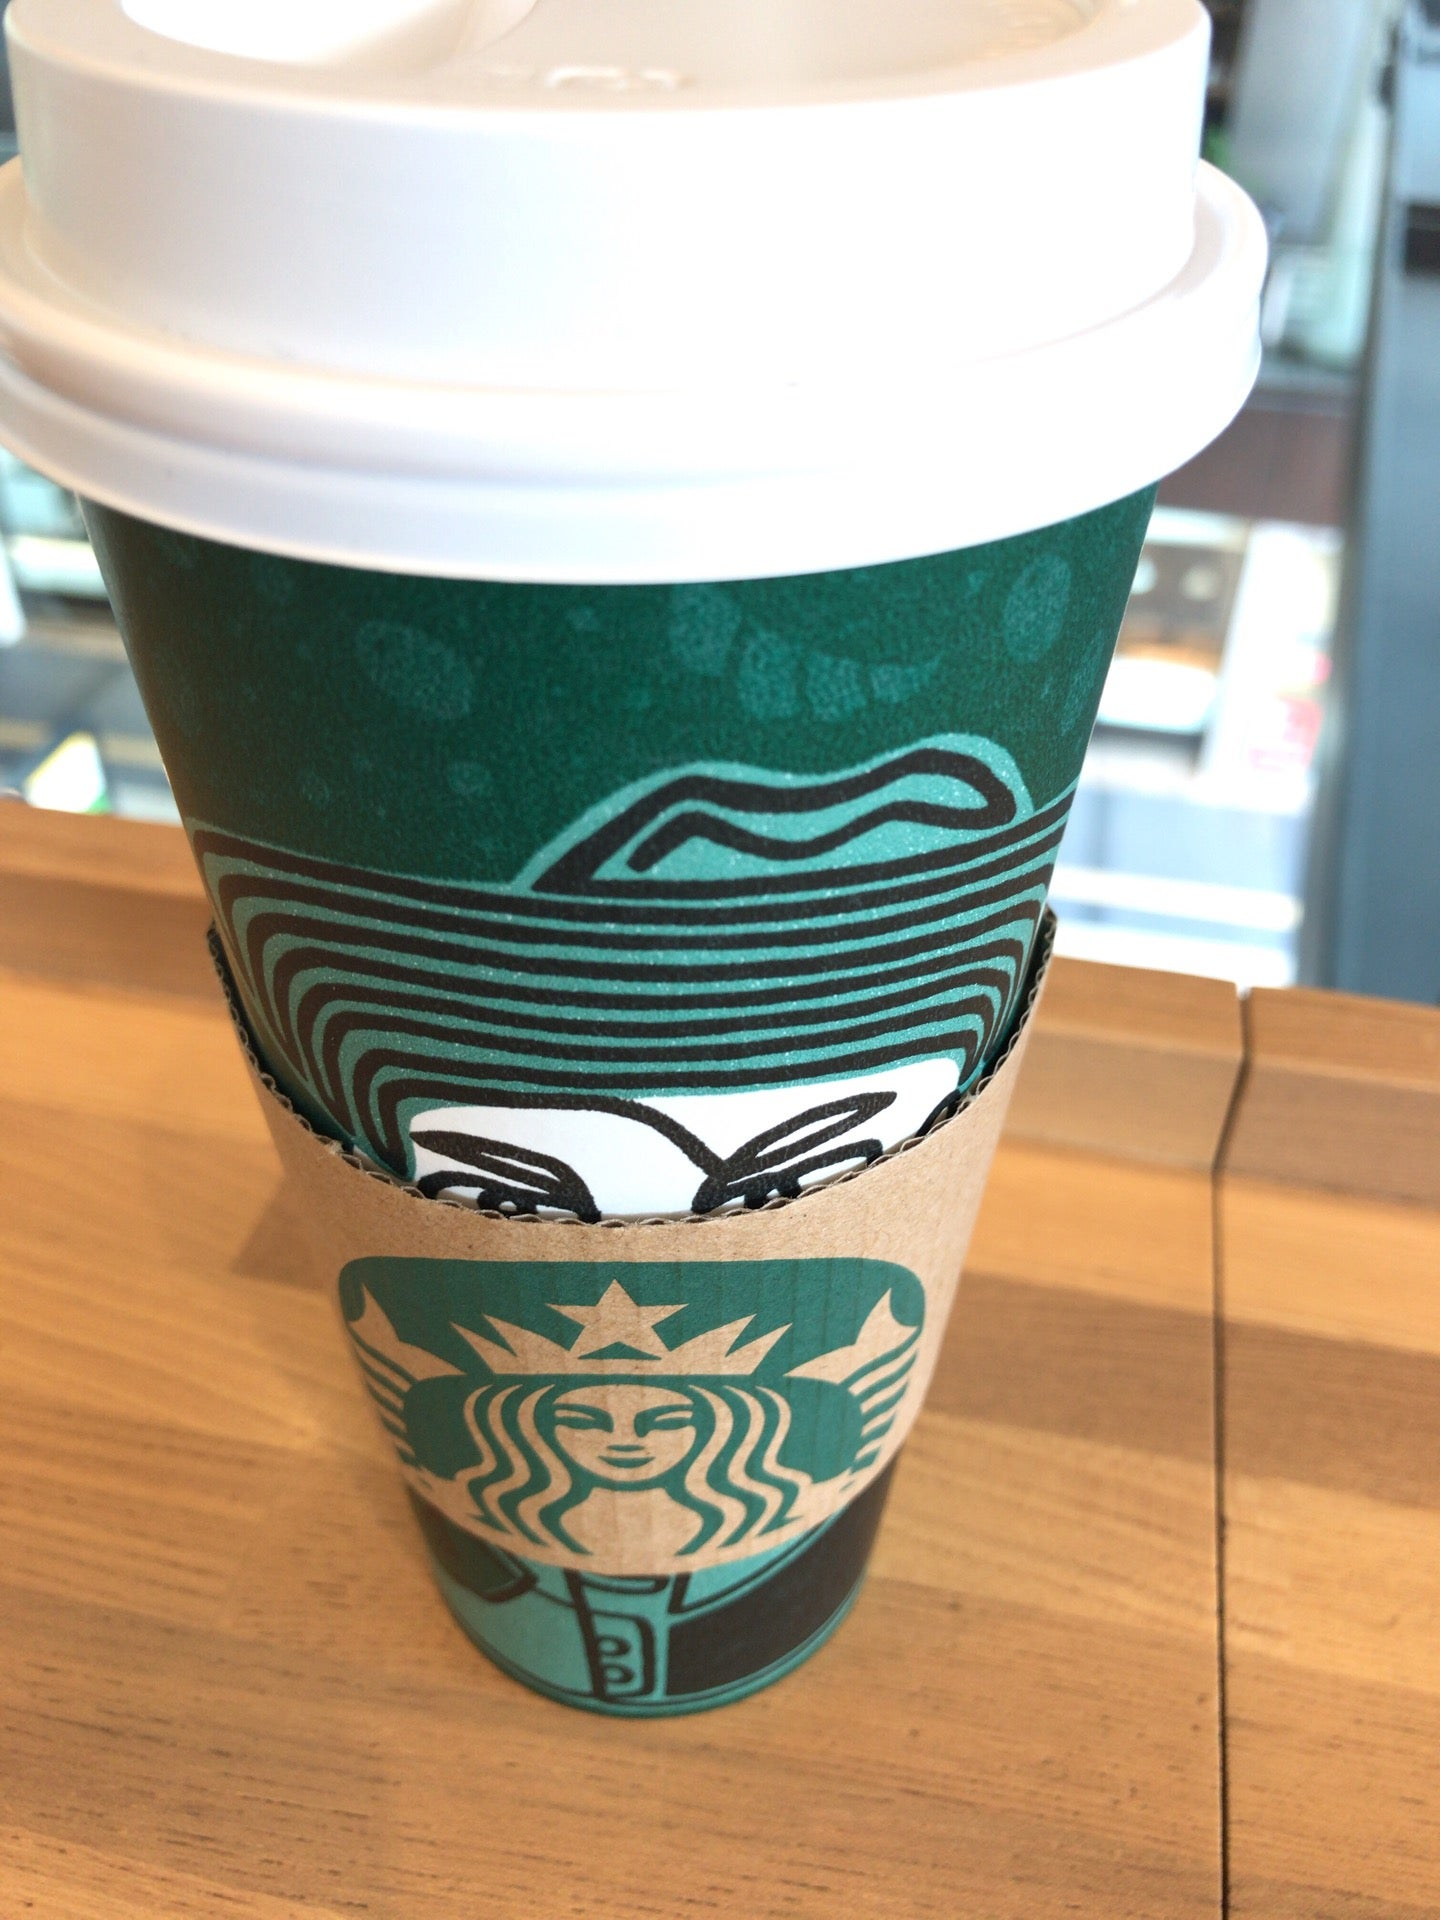 at Starbucks (Starbucks Coffee エスパル仙台東館店)